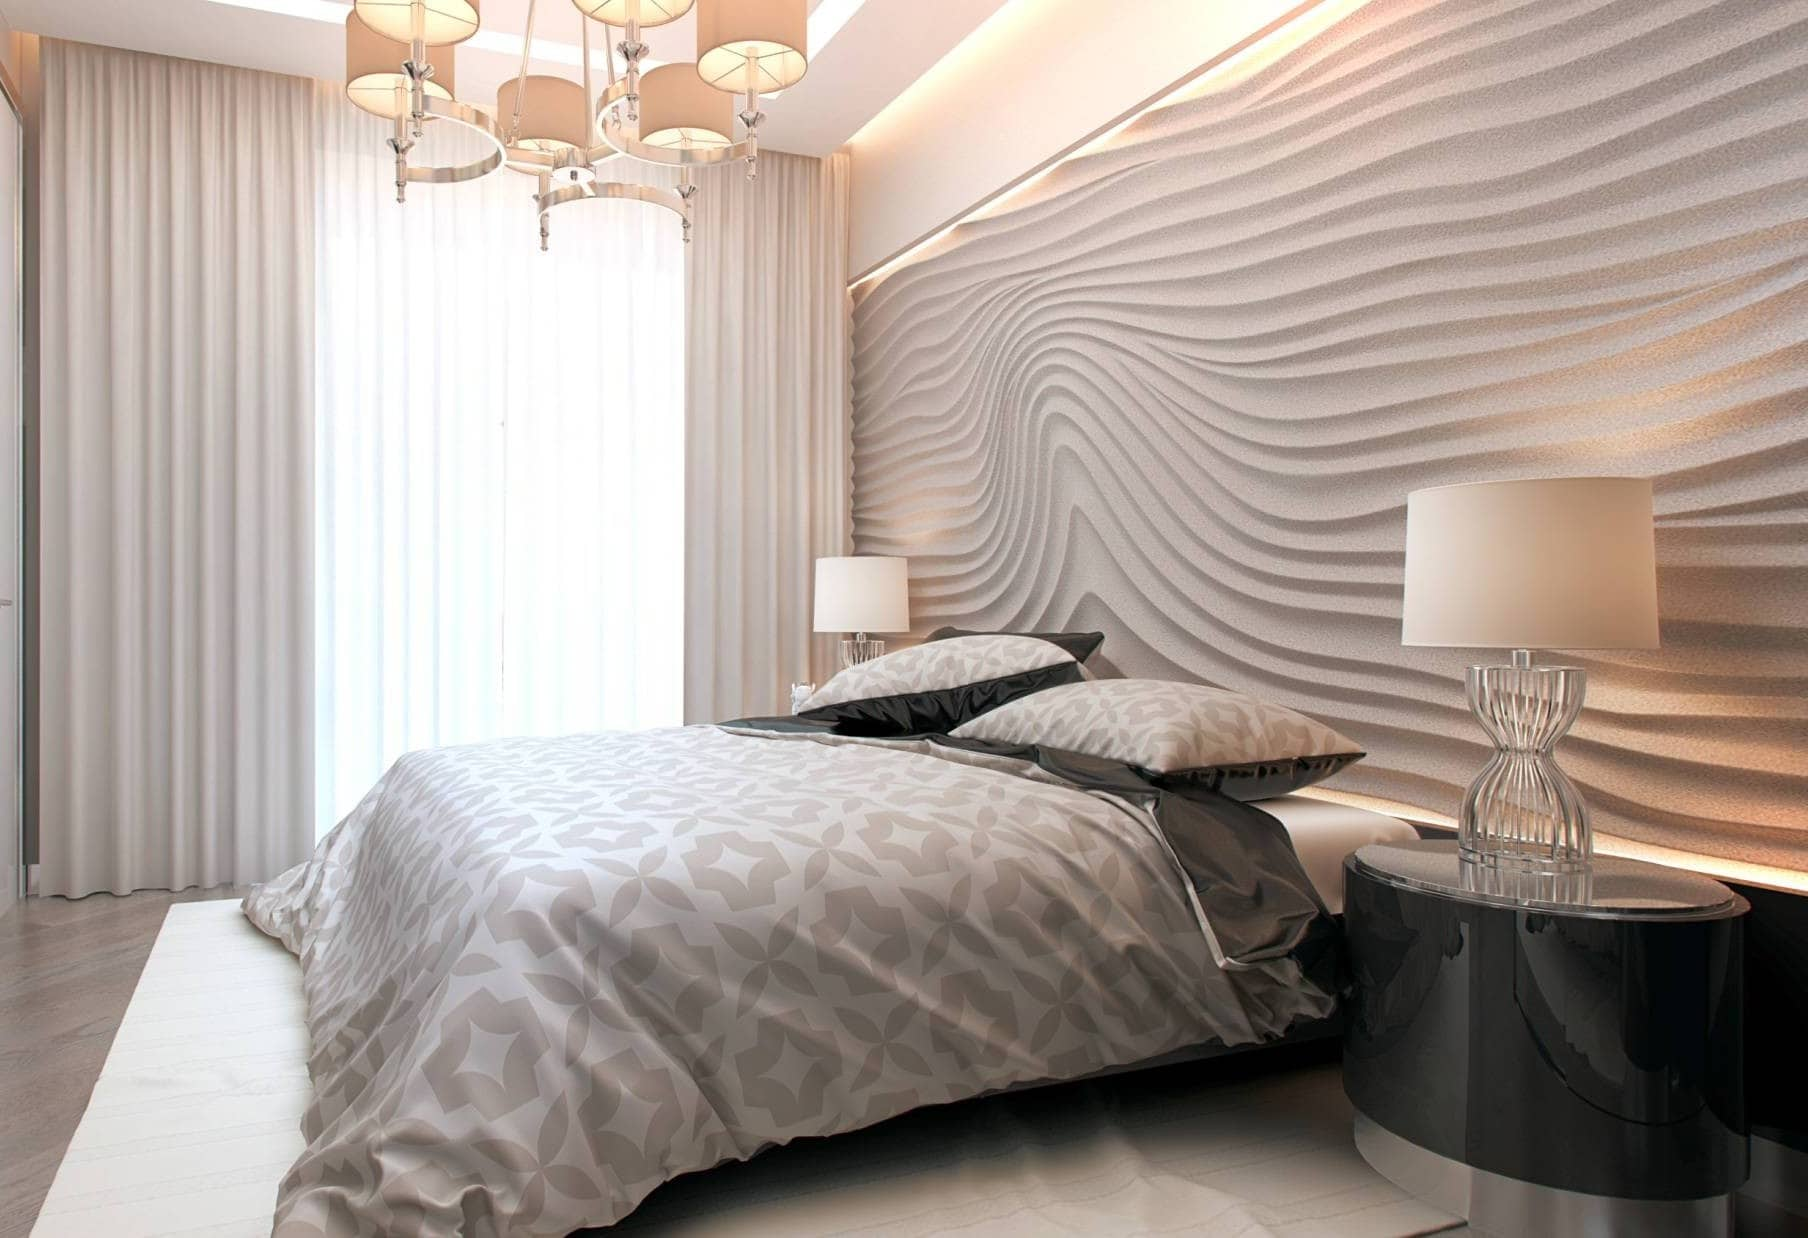 Wallpaper Design Ideas 2020 to Make Interior Elegant. 3D gypsum panelled headboard wall for Contemporary styled bedroom